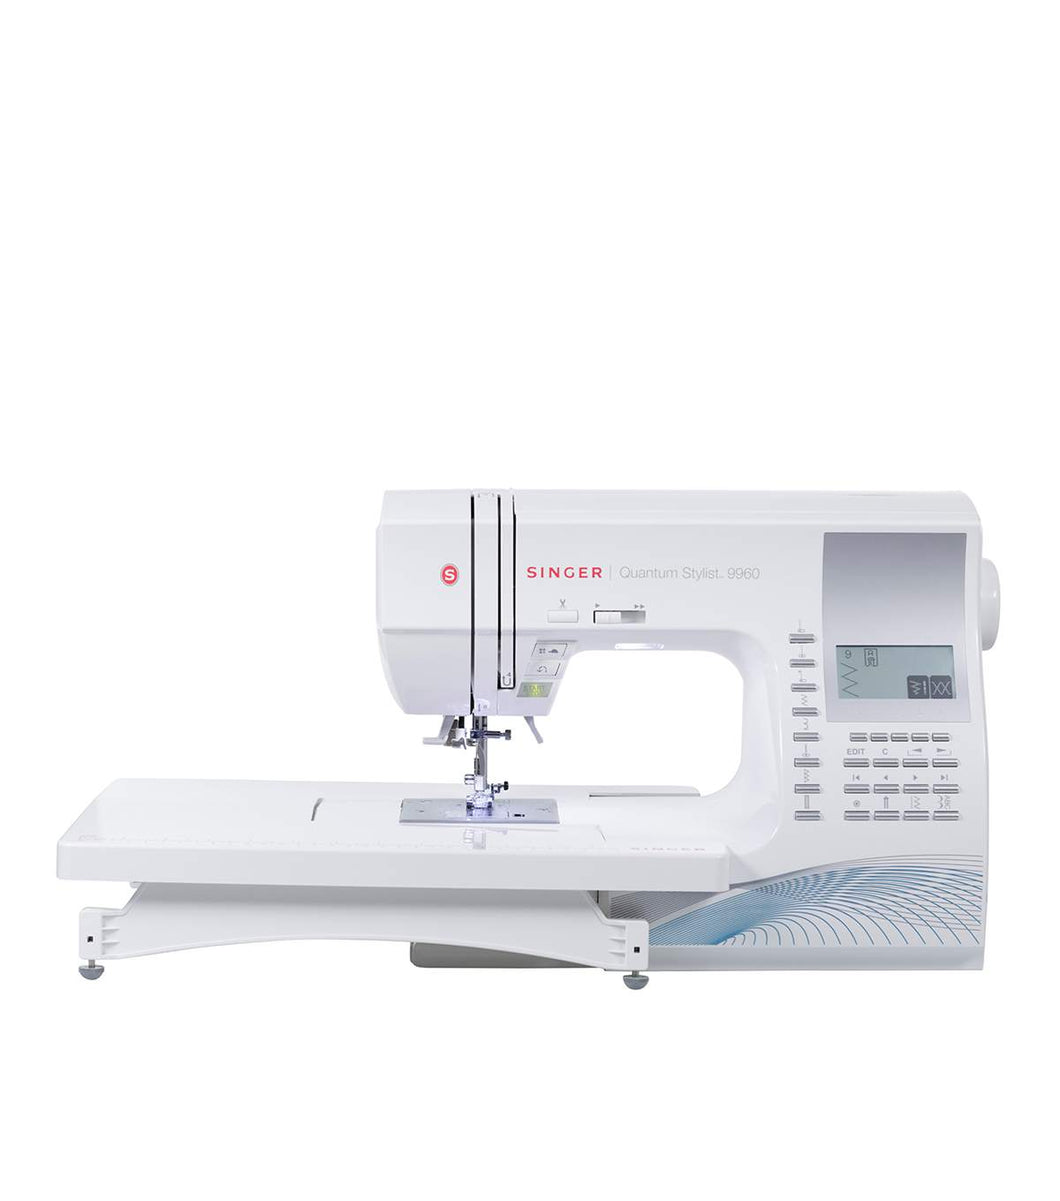 SINGER Quantum Stylist 9960 Computerized Sewing Machine